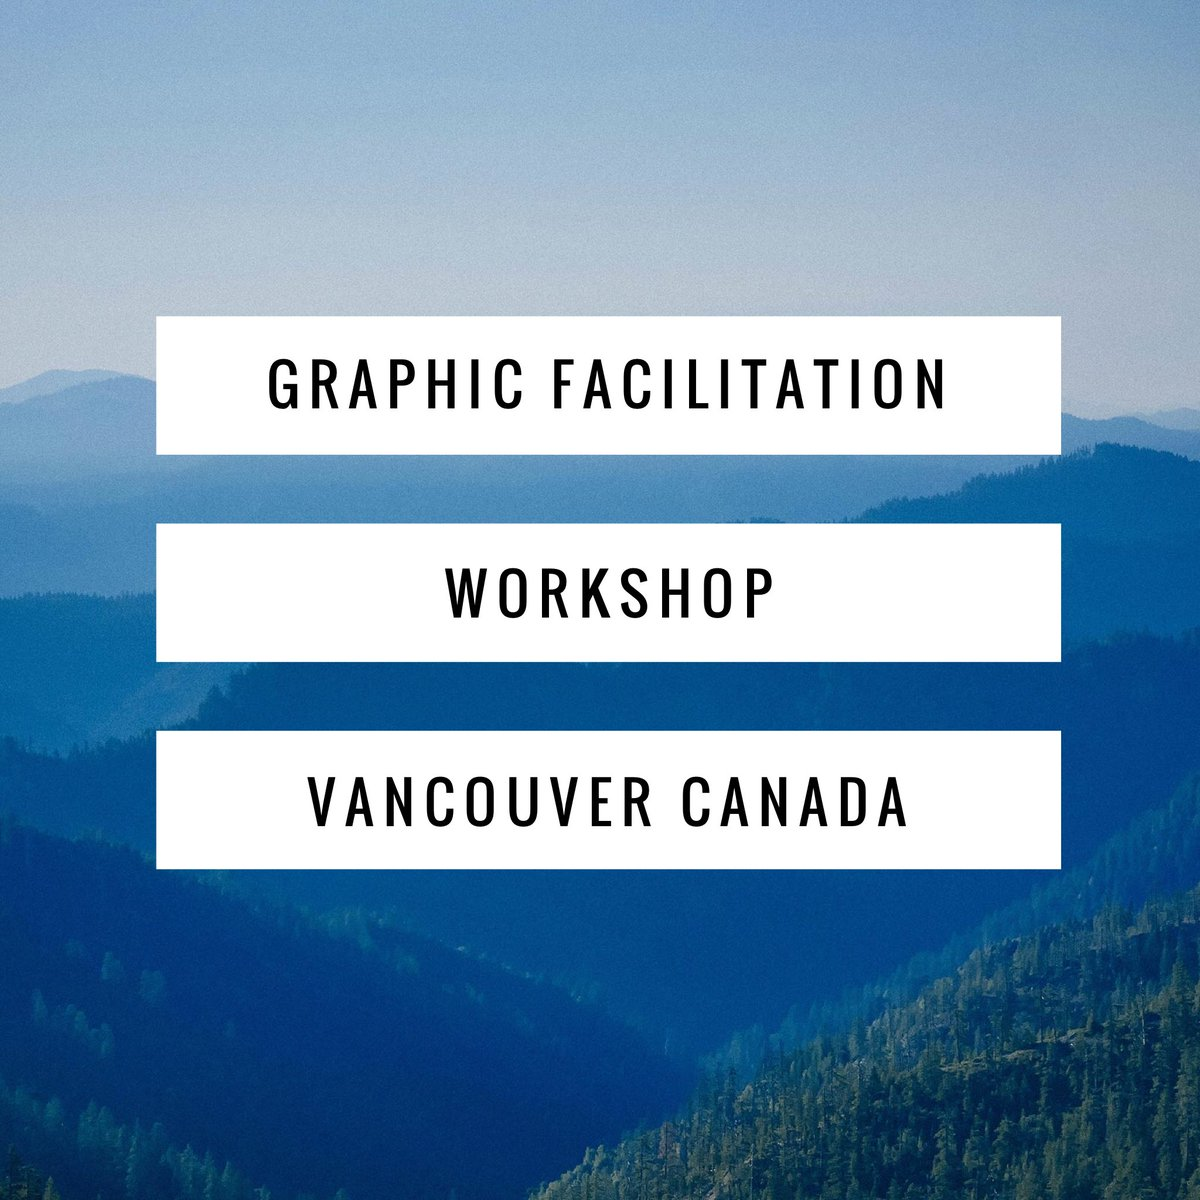 Make an impact with visual thinking! Foundational course in Graphic Recording and Graphic Facilitation - October 28 & 29, 2017 in Vancouver Canada